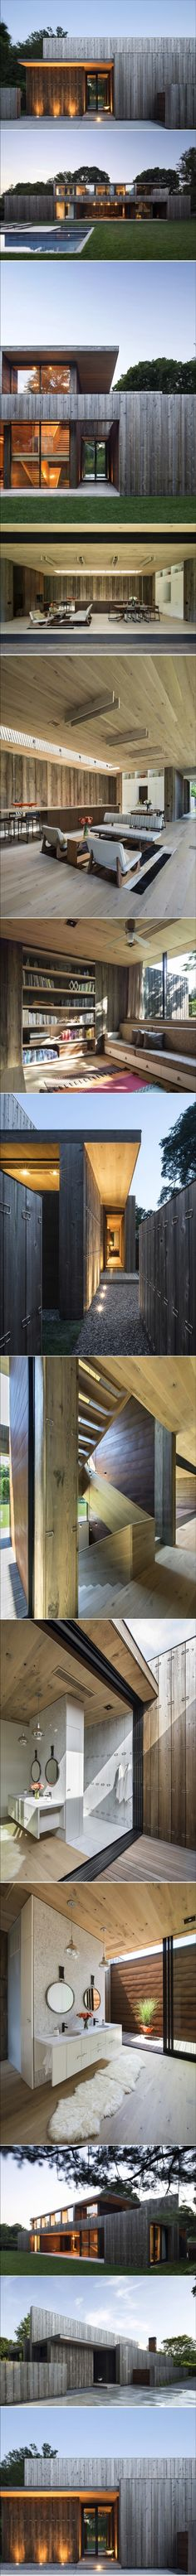 Timber clad beauty in Long Island, New York - Designhunter - Sustainable Architecture with Warmth & Texture